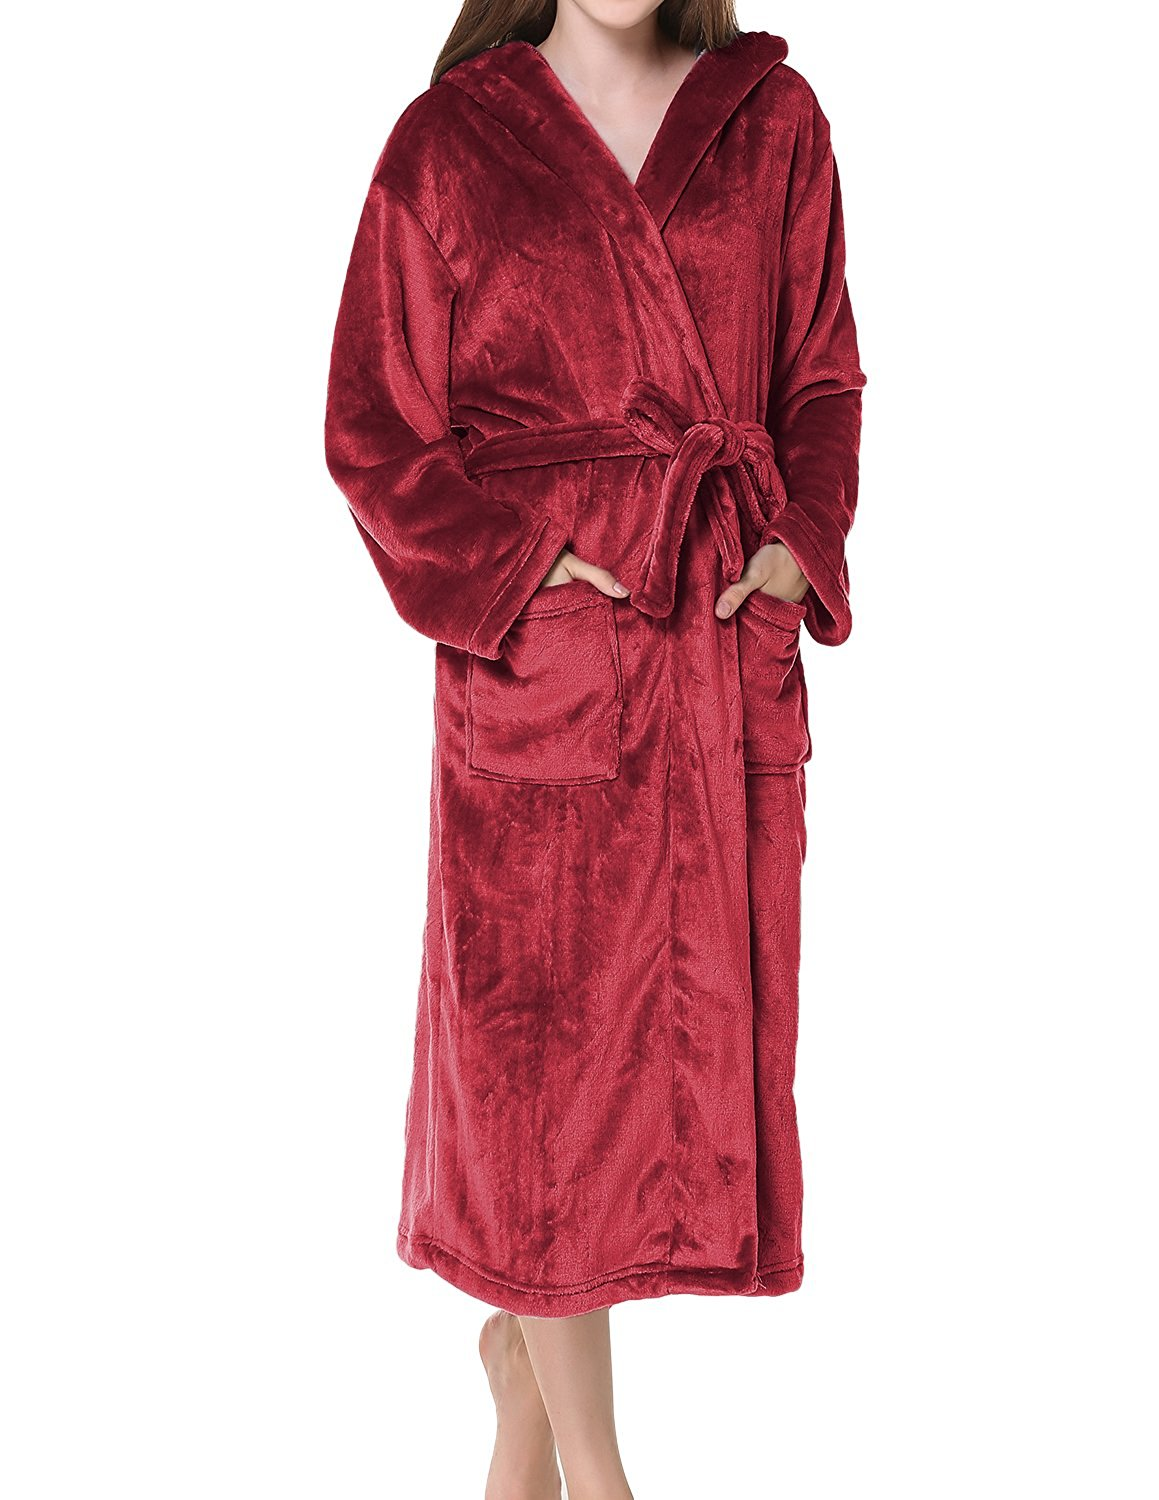 e96e0a12ea Get Quotations · SJINC Women s Hooded Spa Bathrobe Soft Shawl Collar Cozy  Microfiber Fleece Robes